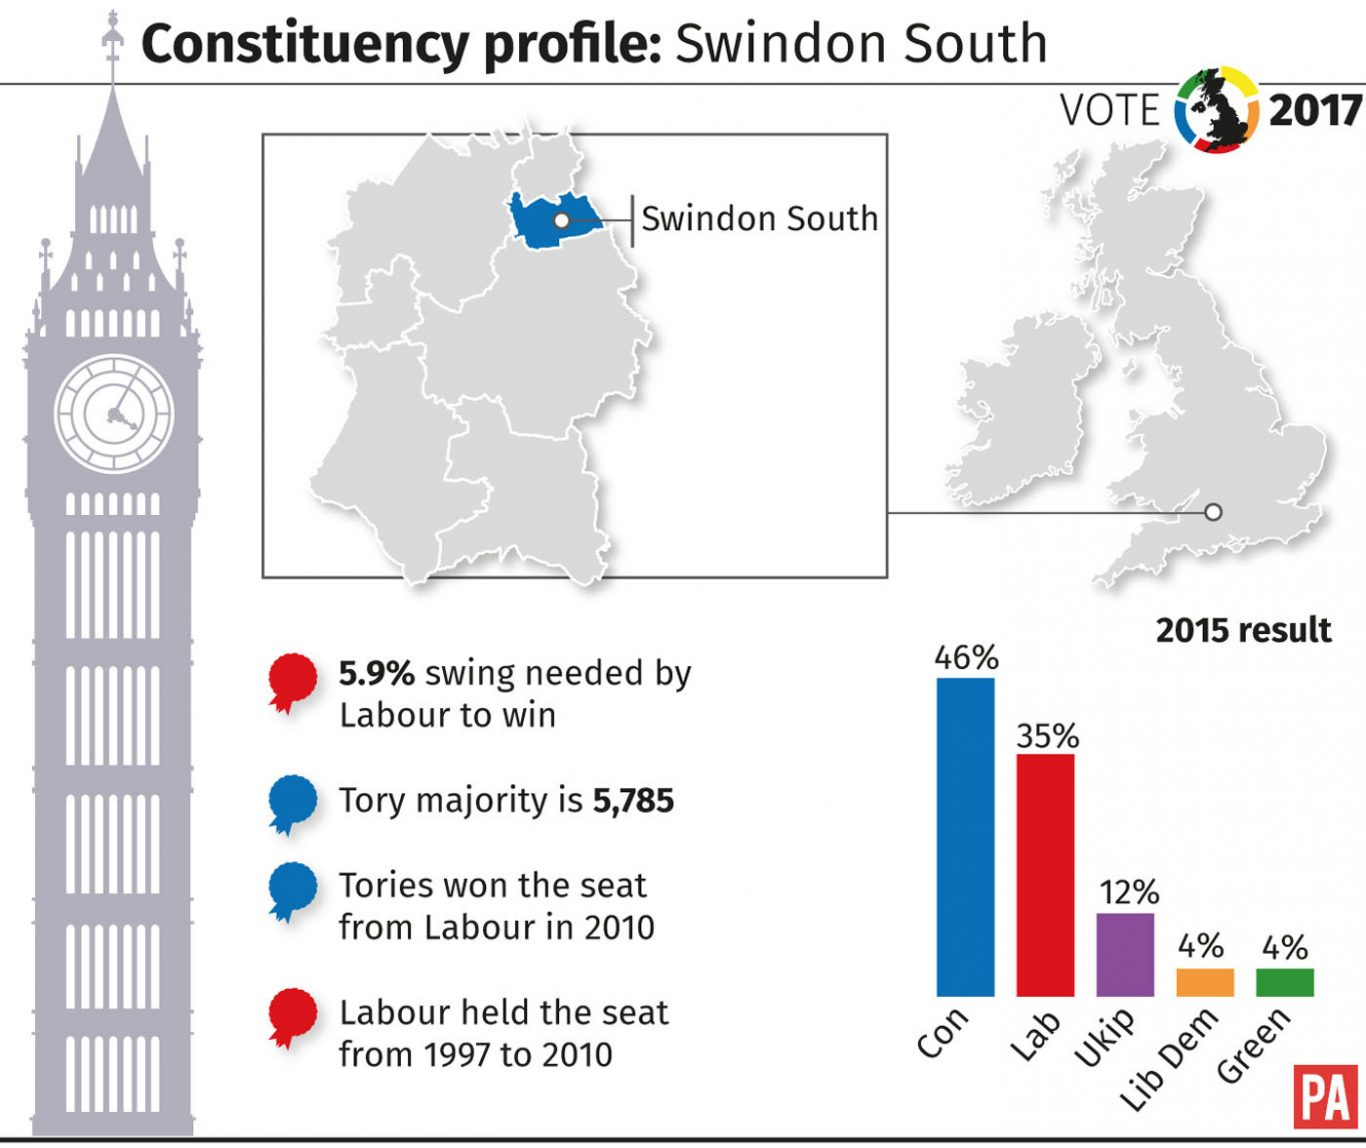 Constuency profile for Swindon South.